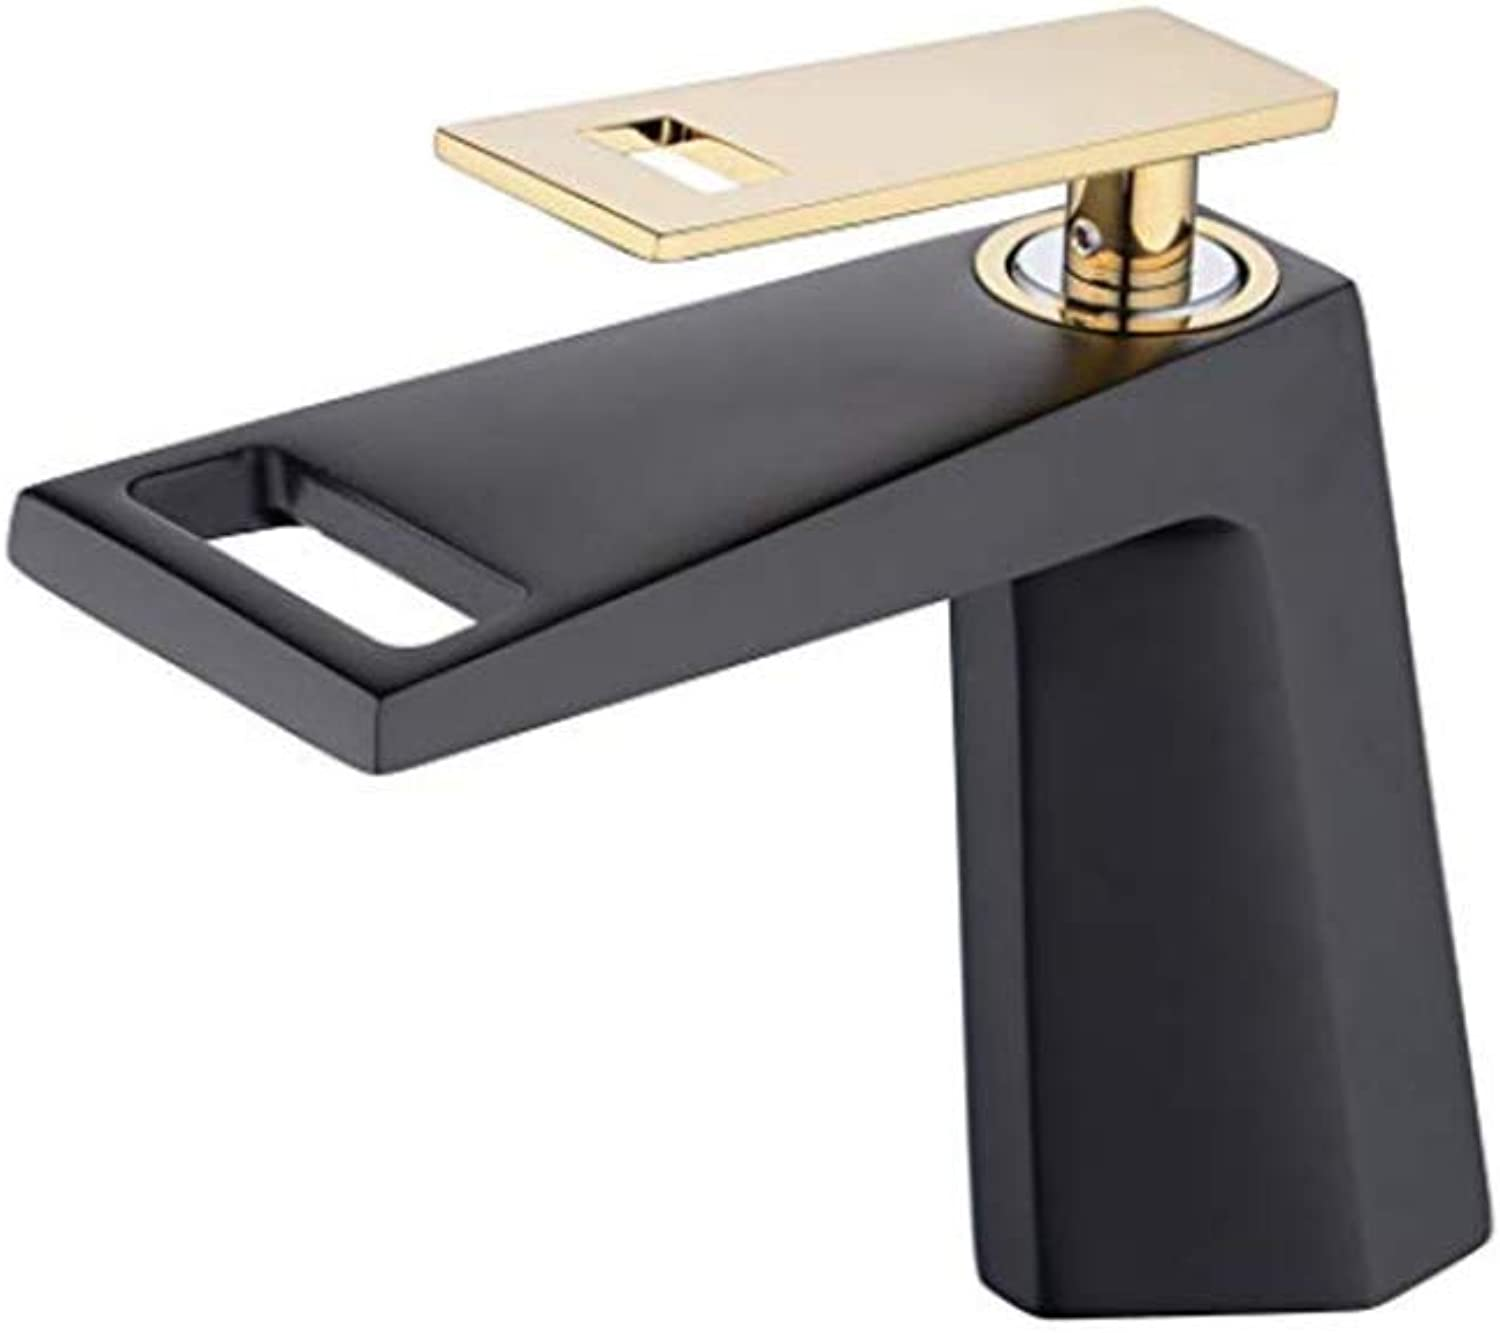 Basin Faucetbasin Mixer Tap in Bathroom, Designer Style,Solid Brass, Black color and golden Handle